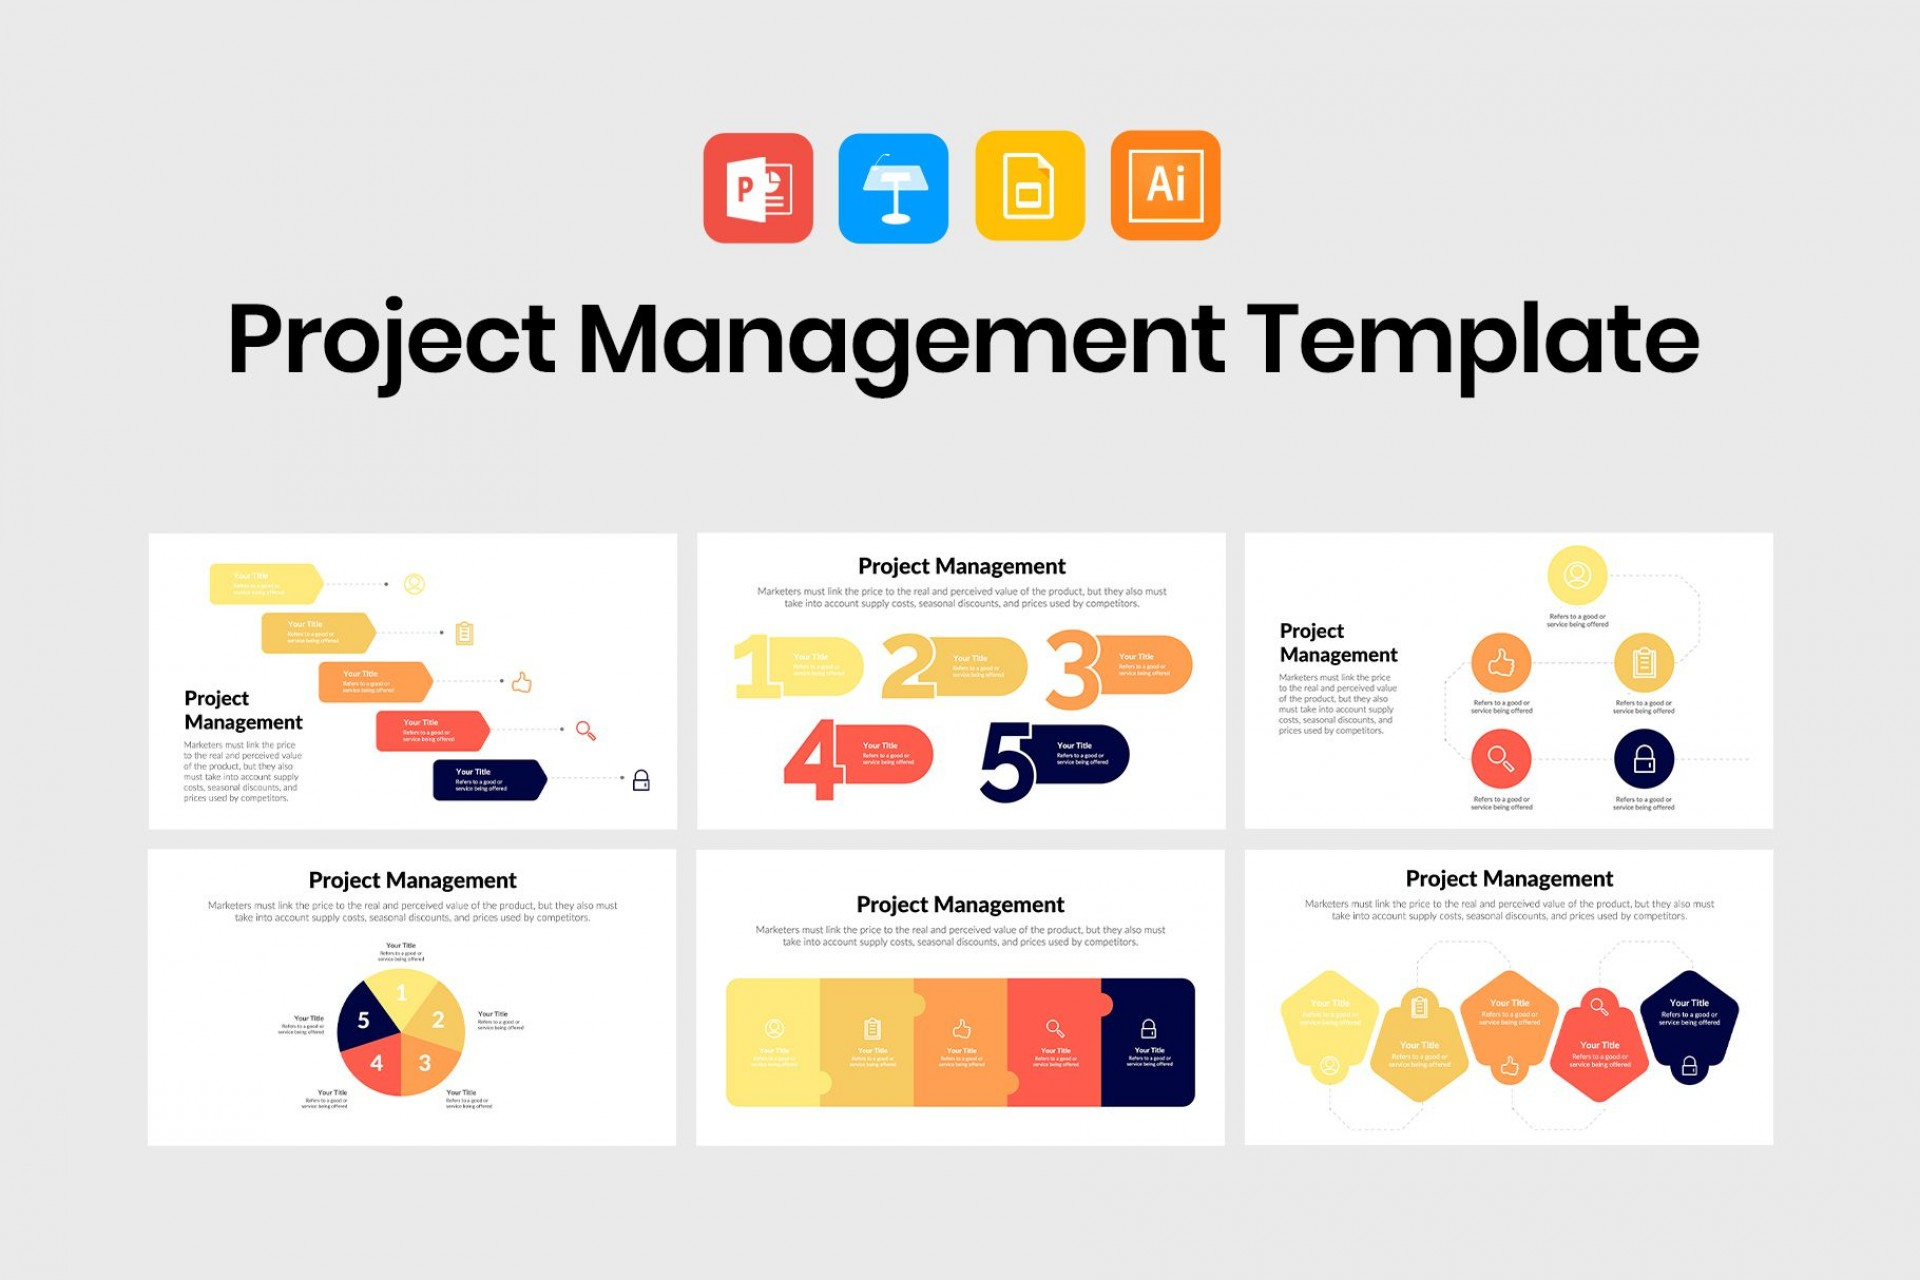 005 Amazing Project Management Powerpoint Template Free Download Image  Sqert Dashboard1920